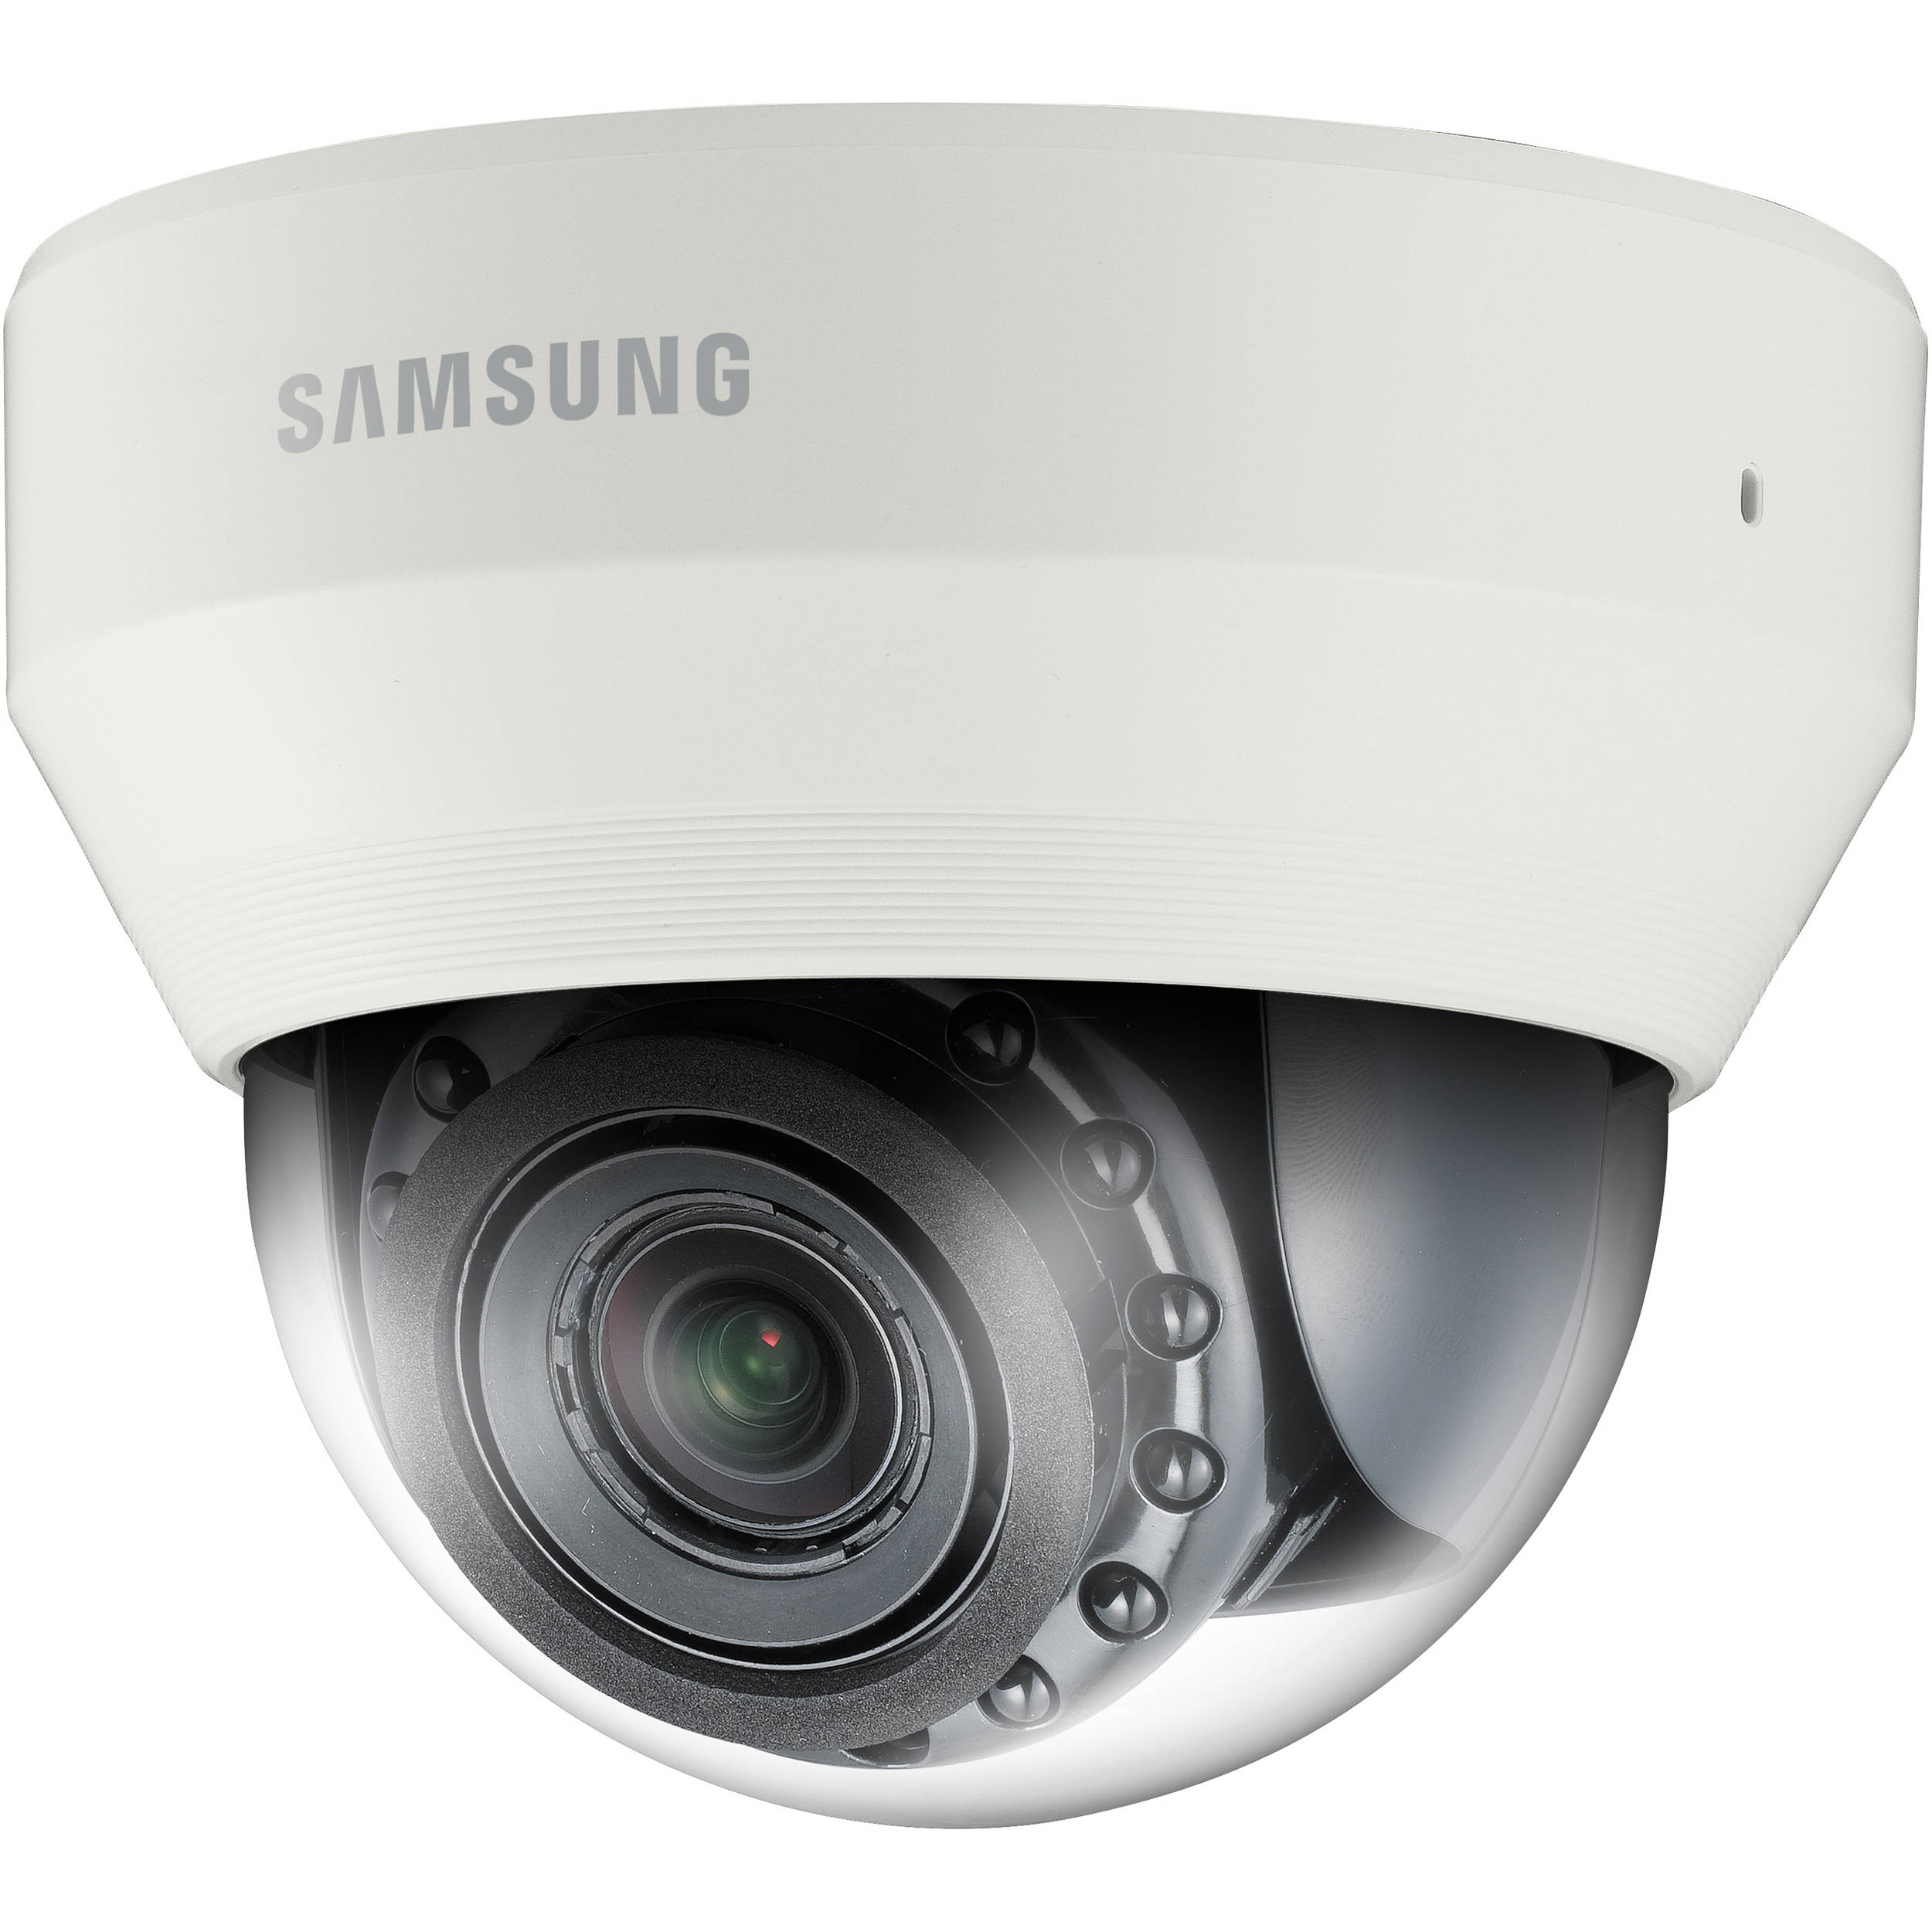 DRIVER FOR SAMSUNG SND-6084 NETWORK CAMERA